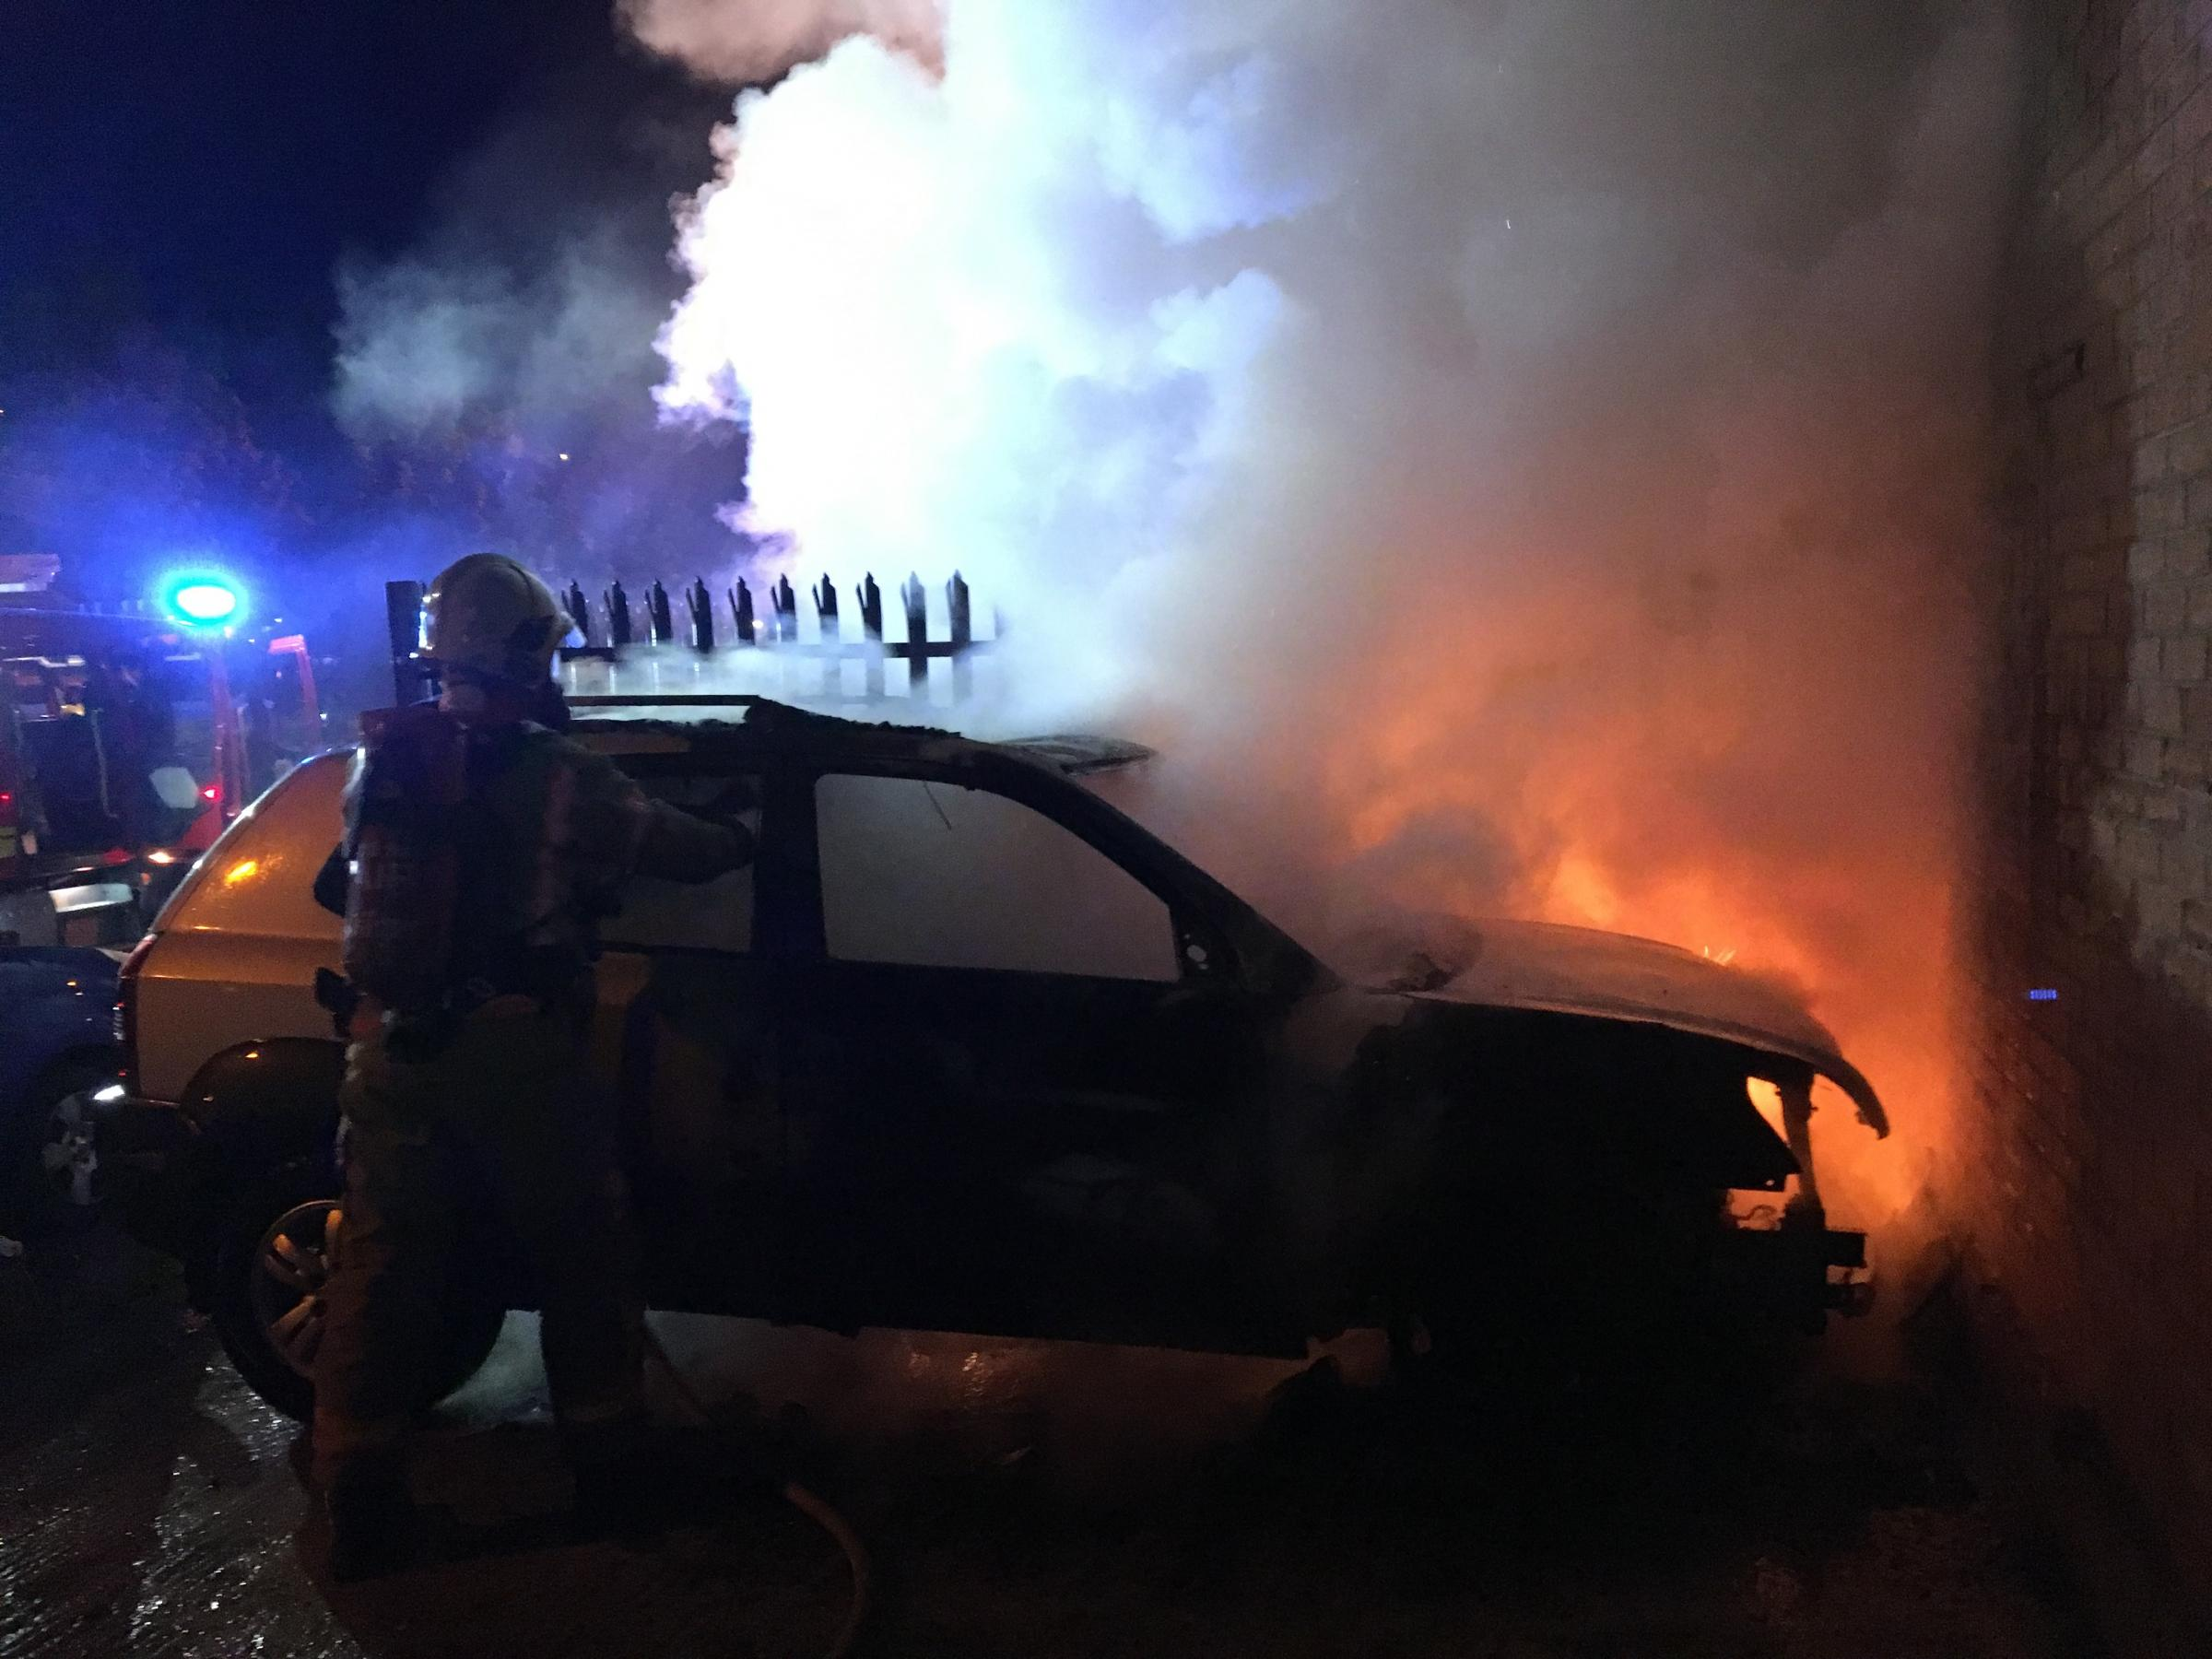 A firefighter wearing breathing apparatus helps extinguish the burning car